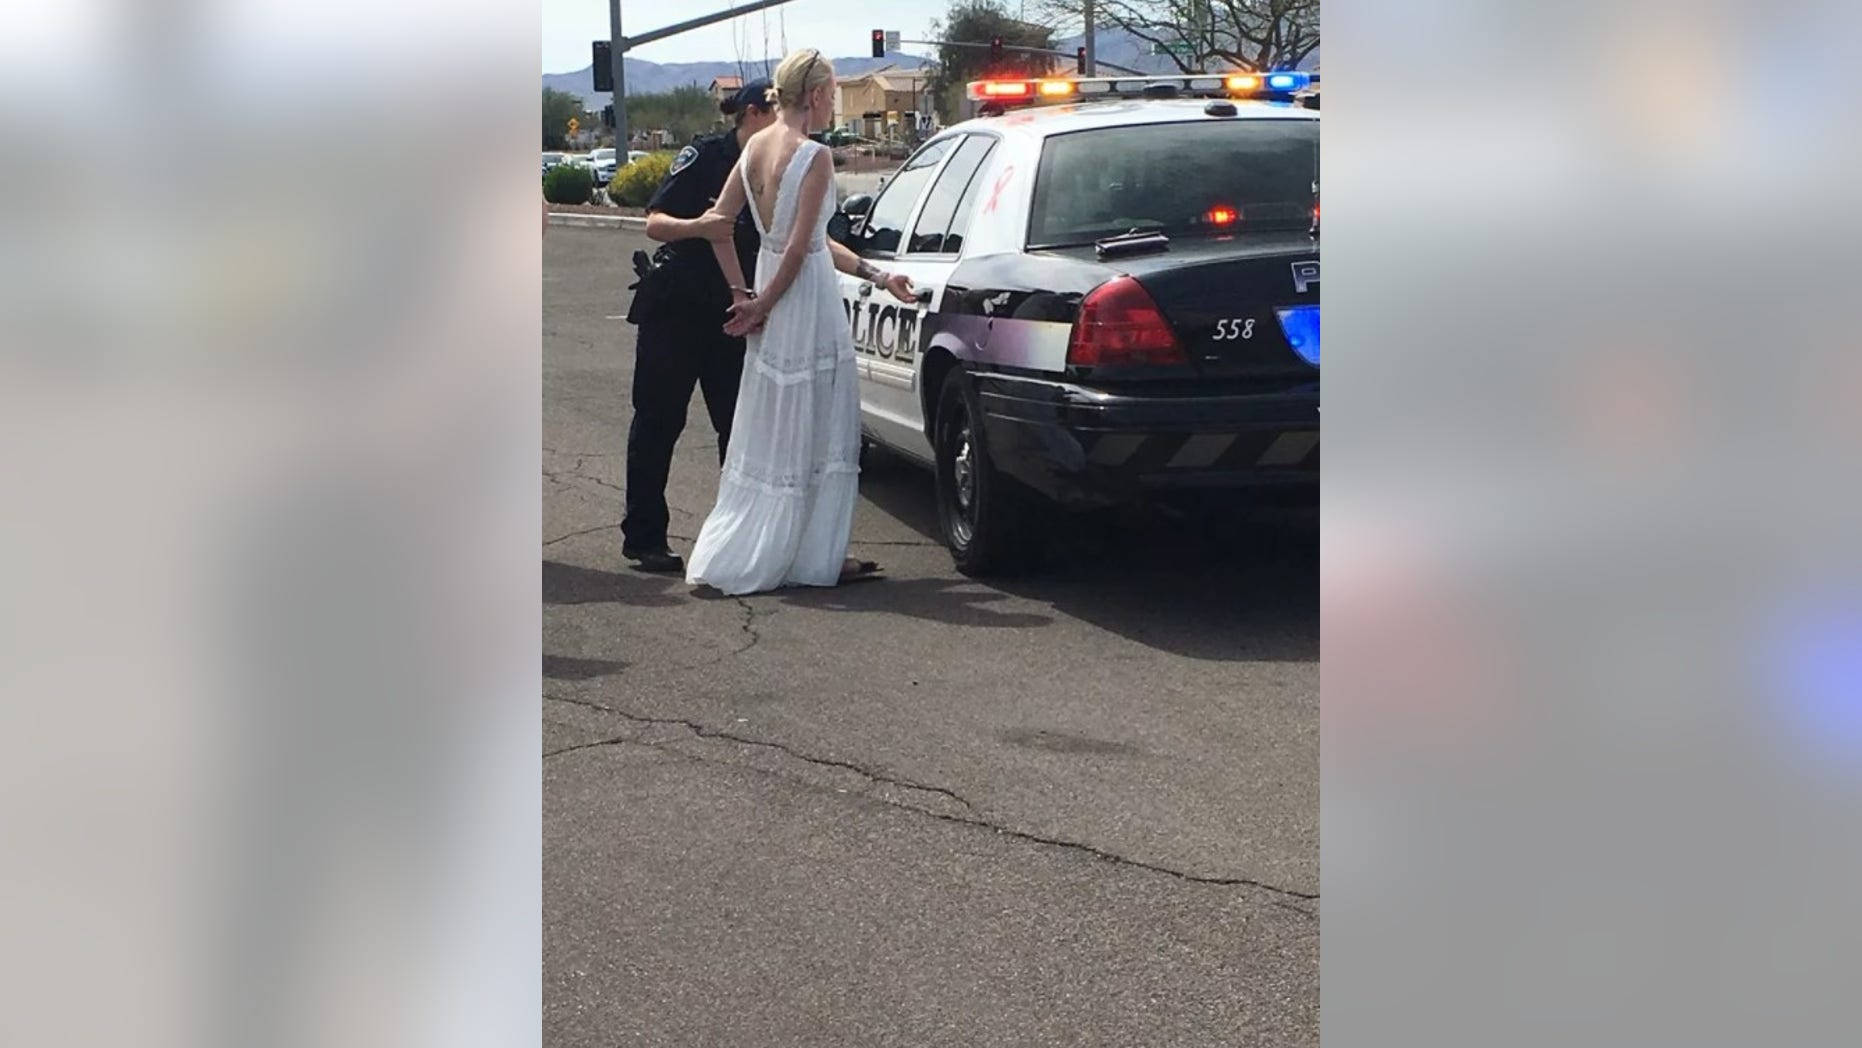 Amber Young, 32, was arrested and charged with DUI on Monday after allegedly driving drunk on the way to her own wedding.